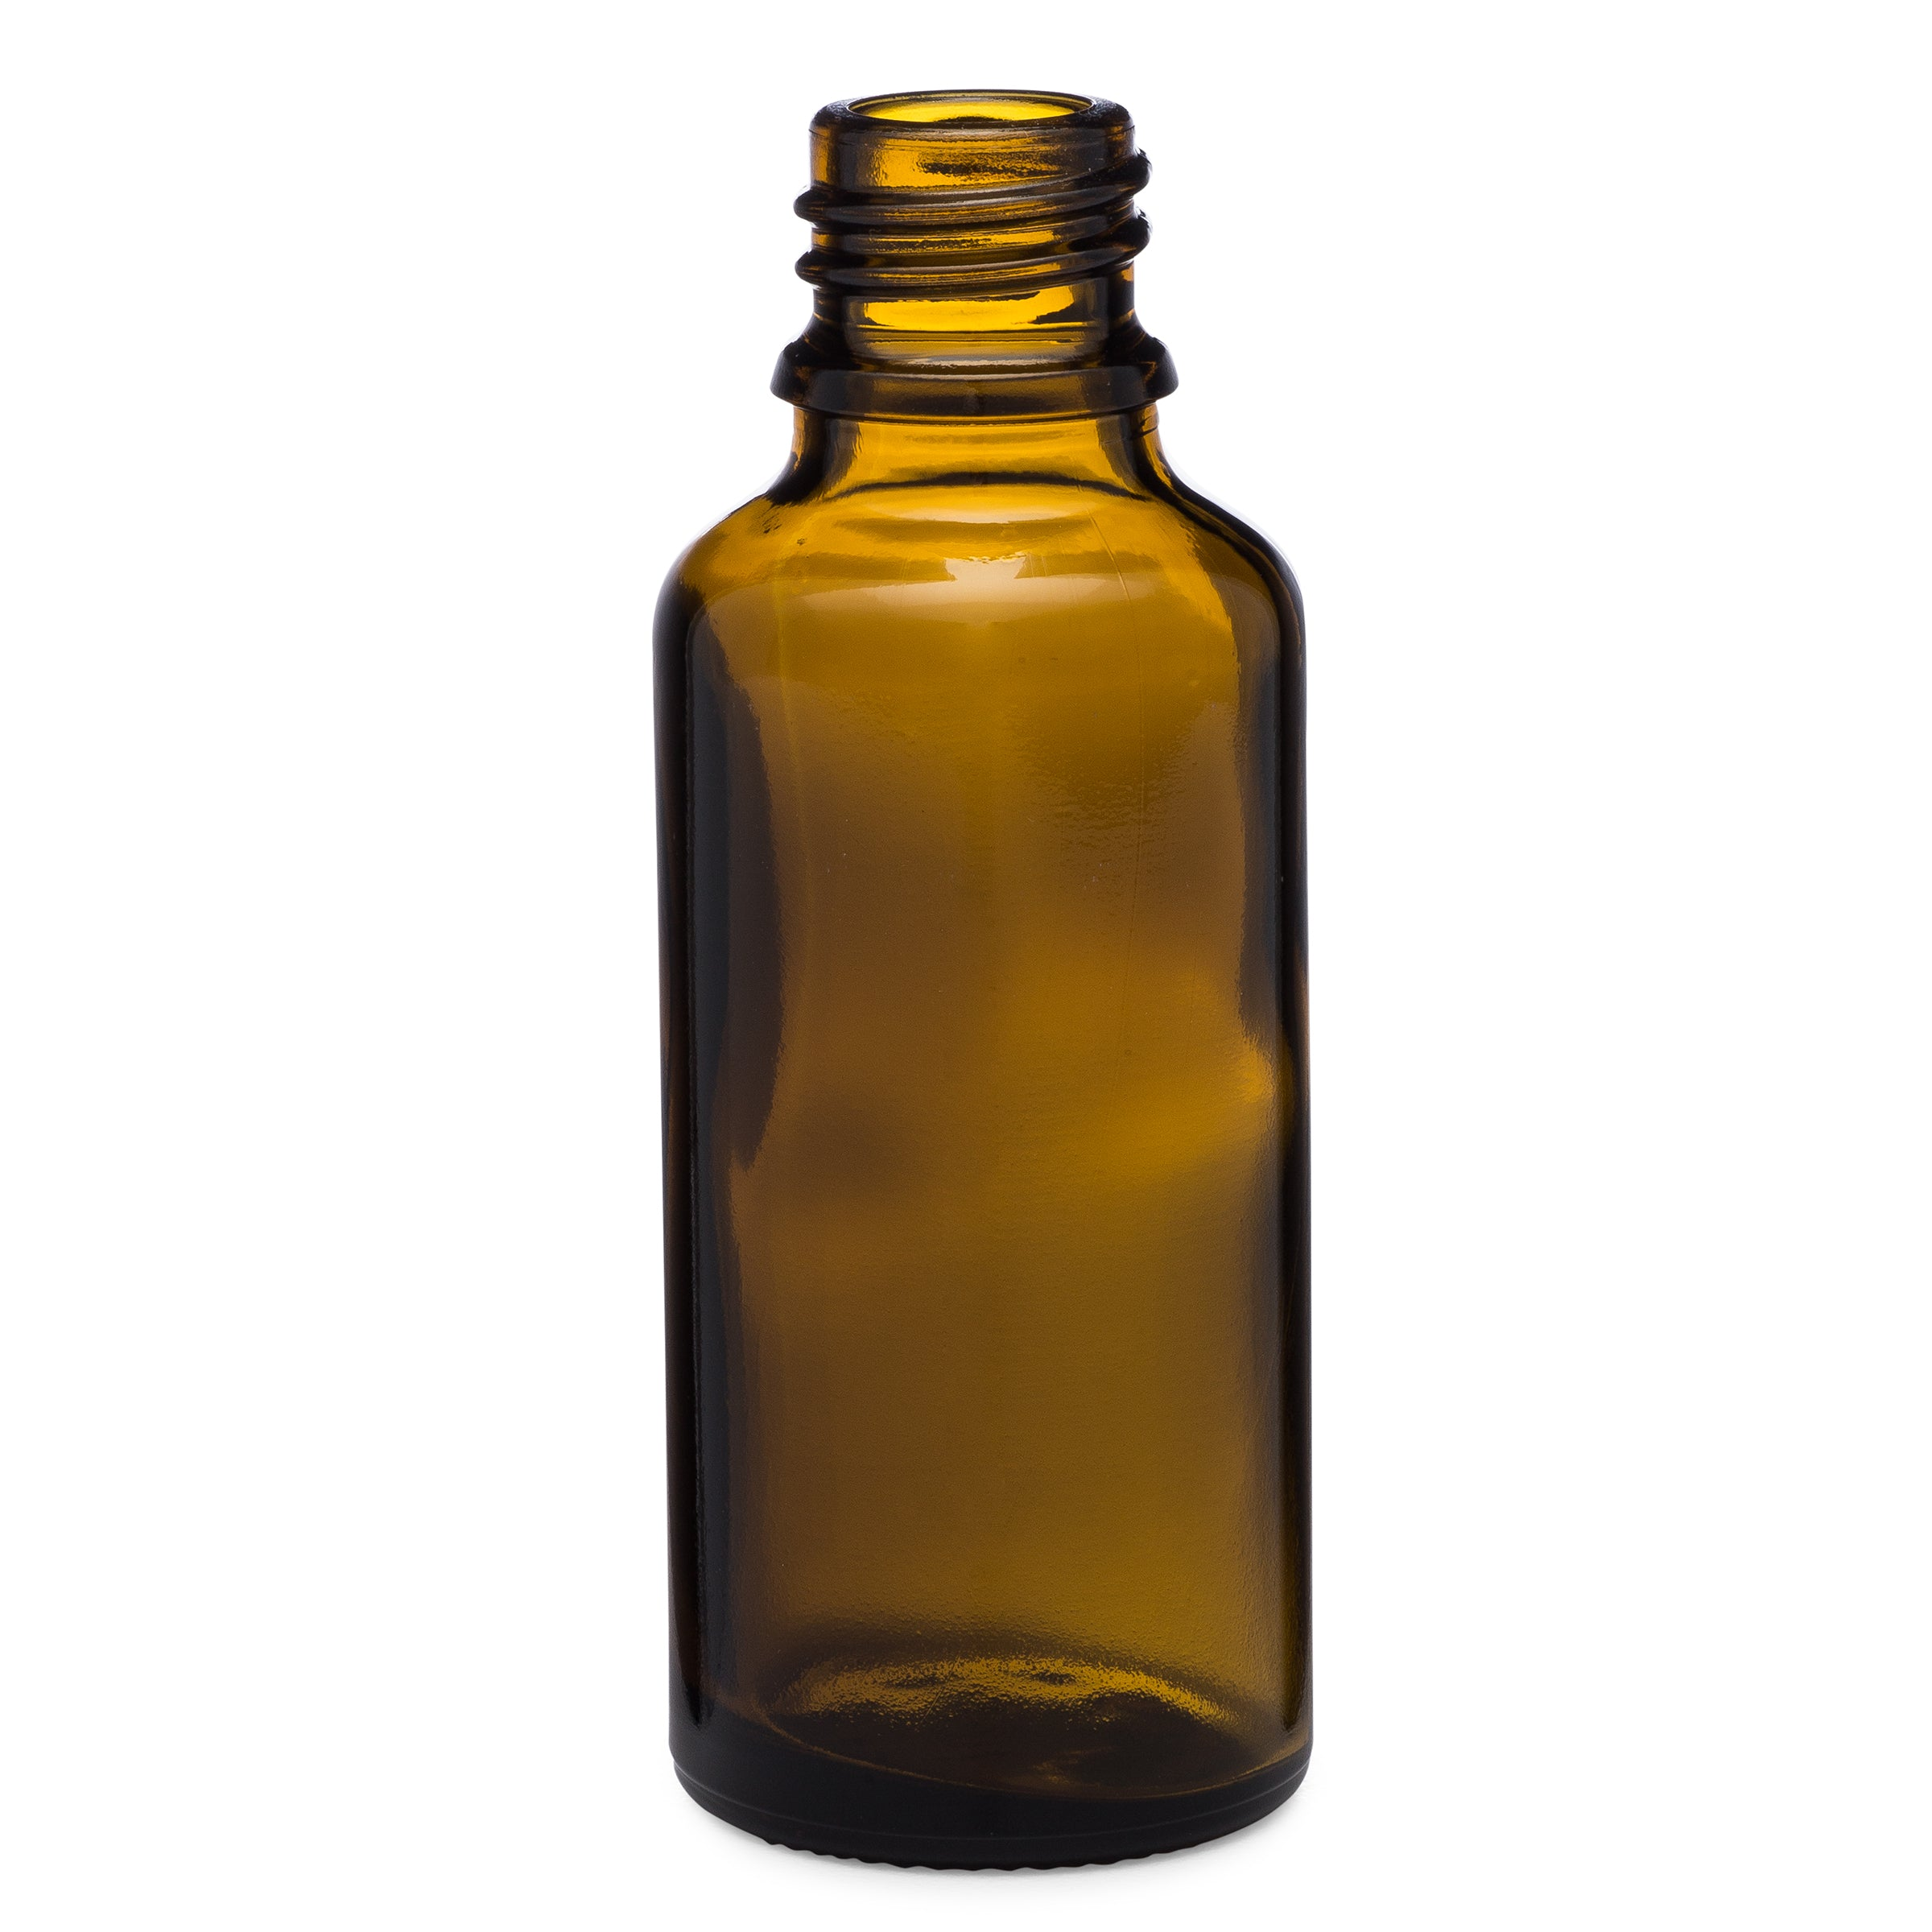 30ml/1oz Amber Dropper Bottle